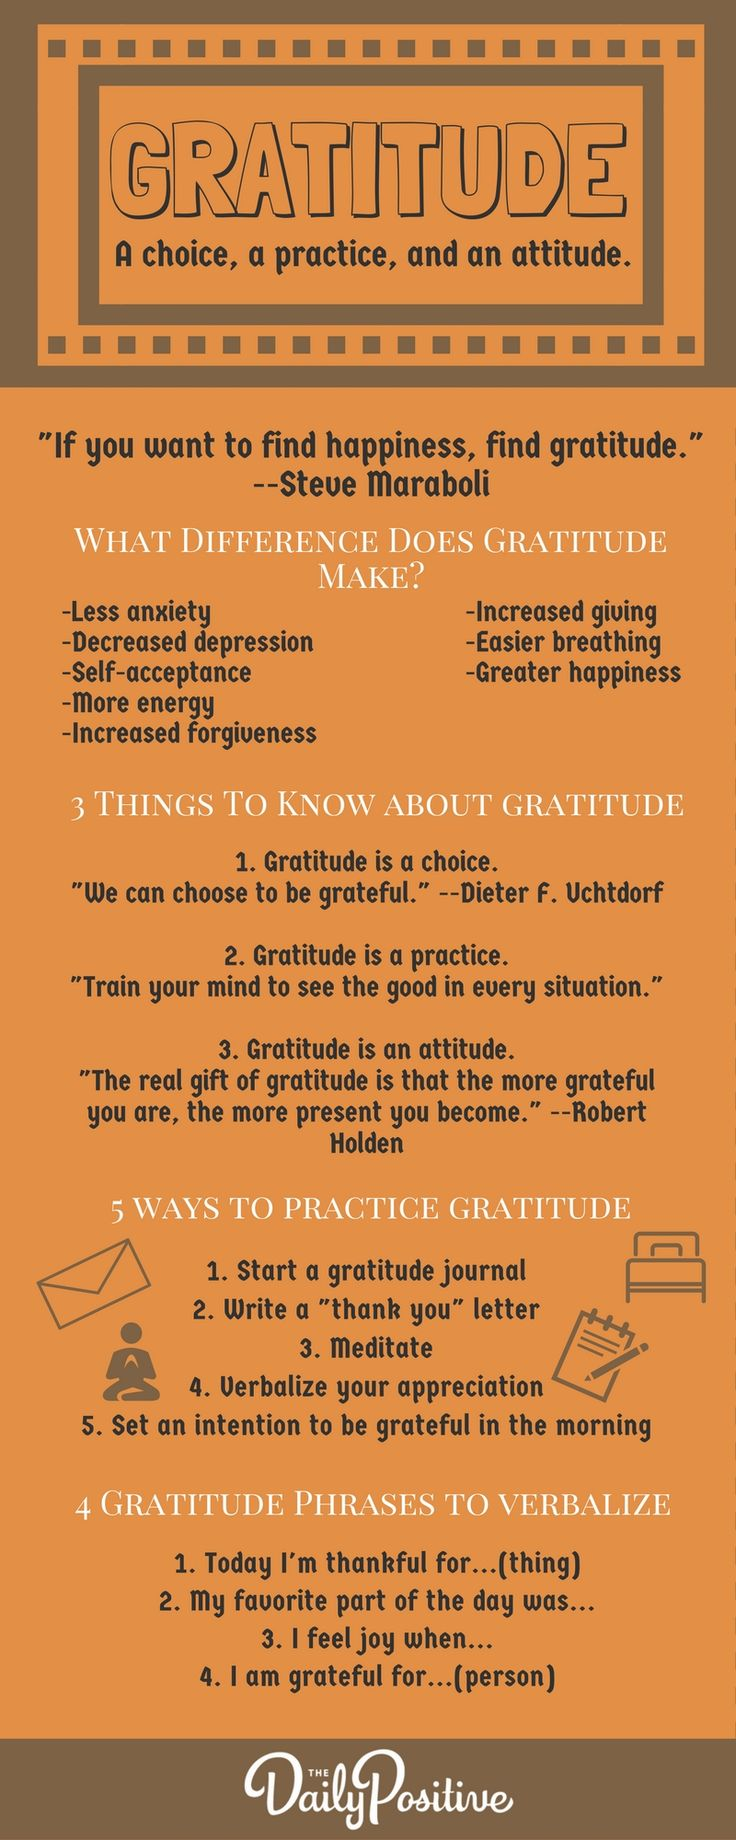 Gratitude | Tips | Attitude | Practice | Happy | Happiness | How to Practice Gratitude